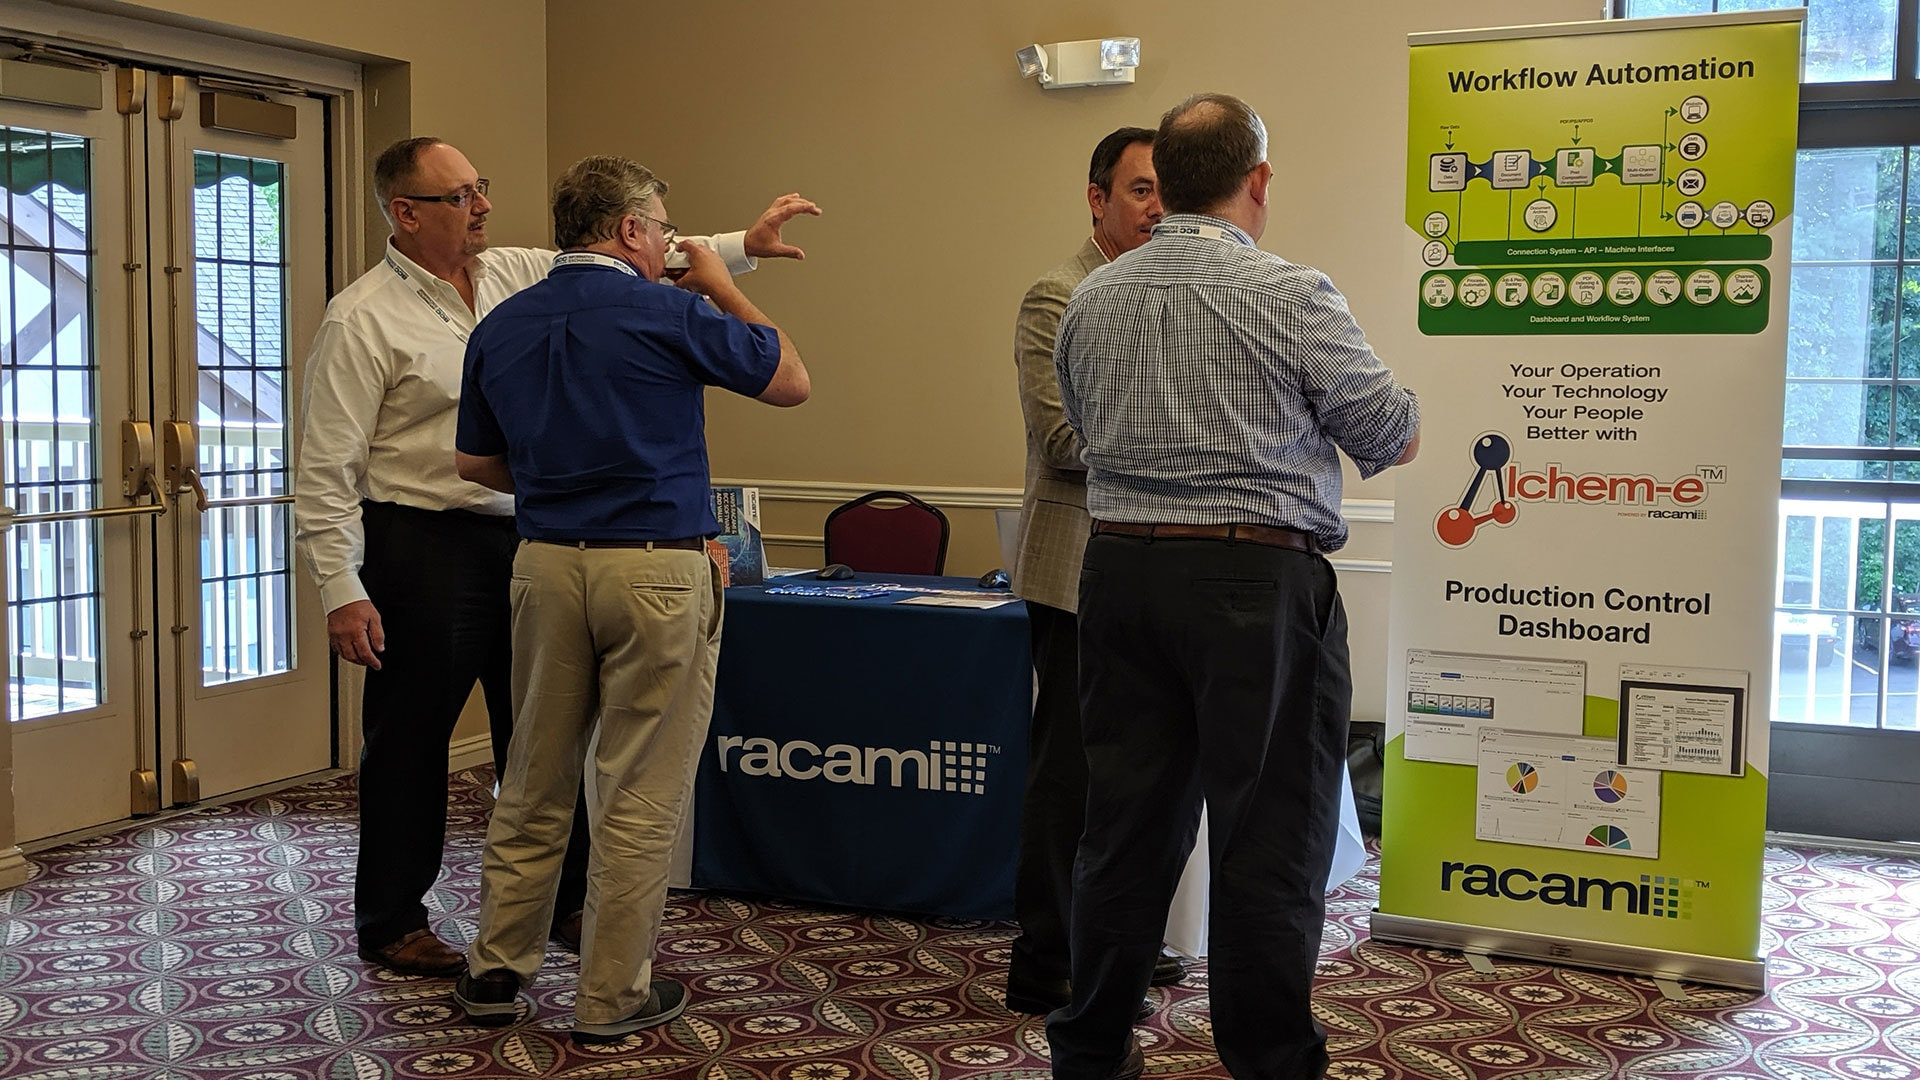 Attendees and Sponsor Racami in the IE Meeting Zone